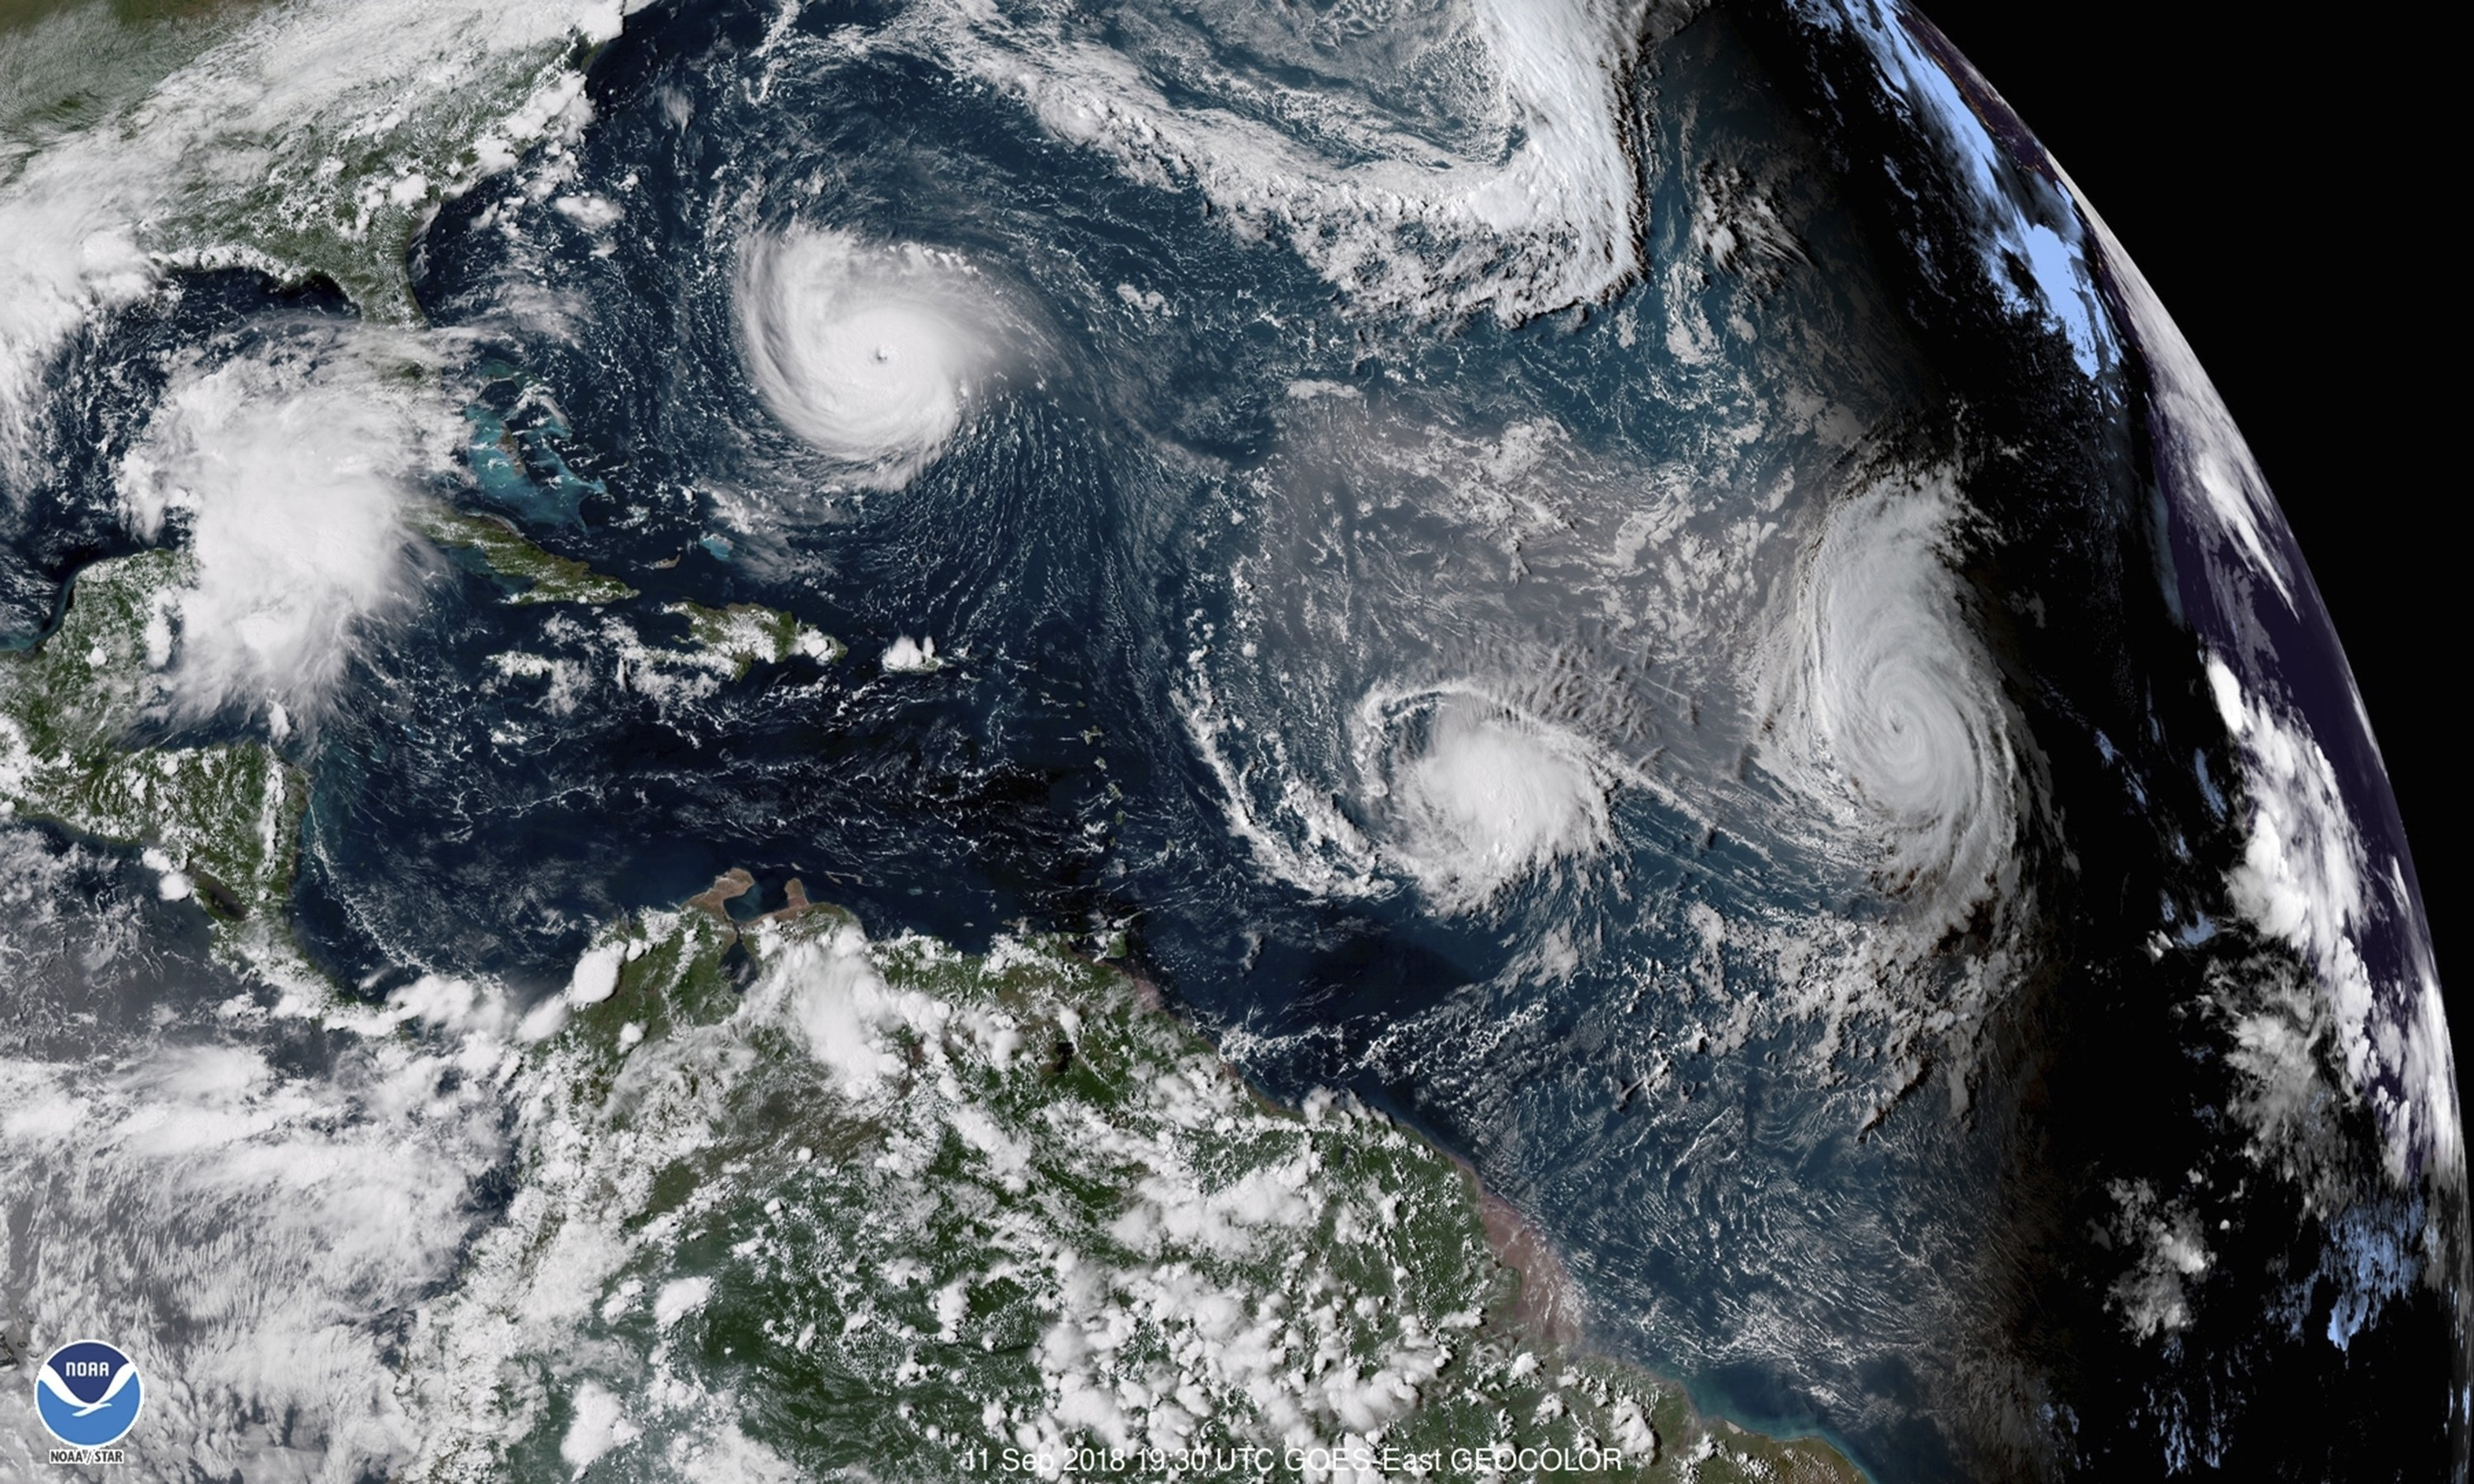 This enhanced satellite image made available by NOAA shows Tropical Storm Florence, upper left, in the Atlantic Ocean at 3:30 p.m. Eastern Standard Time, Sept. 11, 2018. (NOAA via AP)